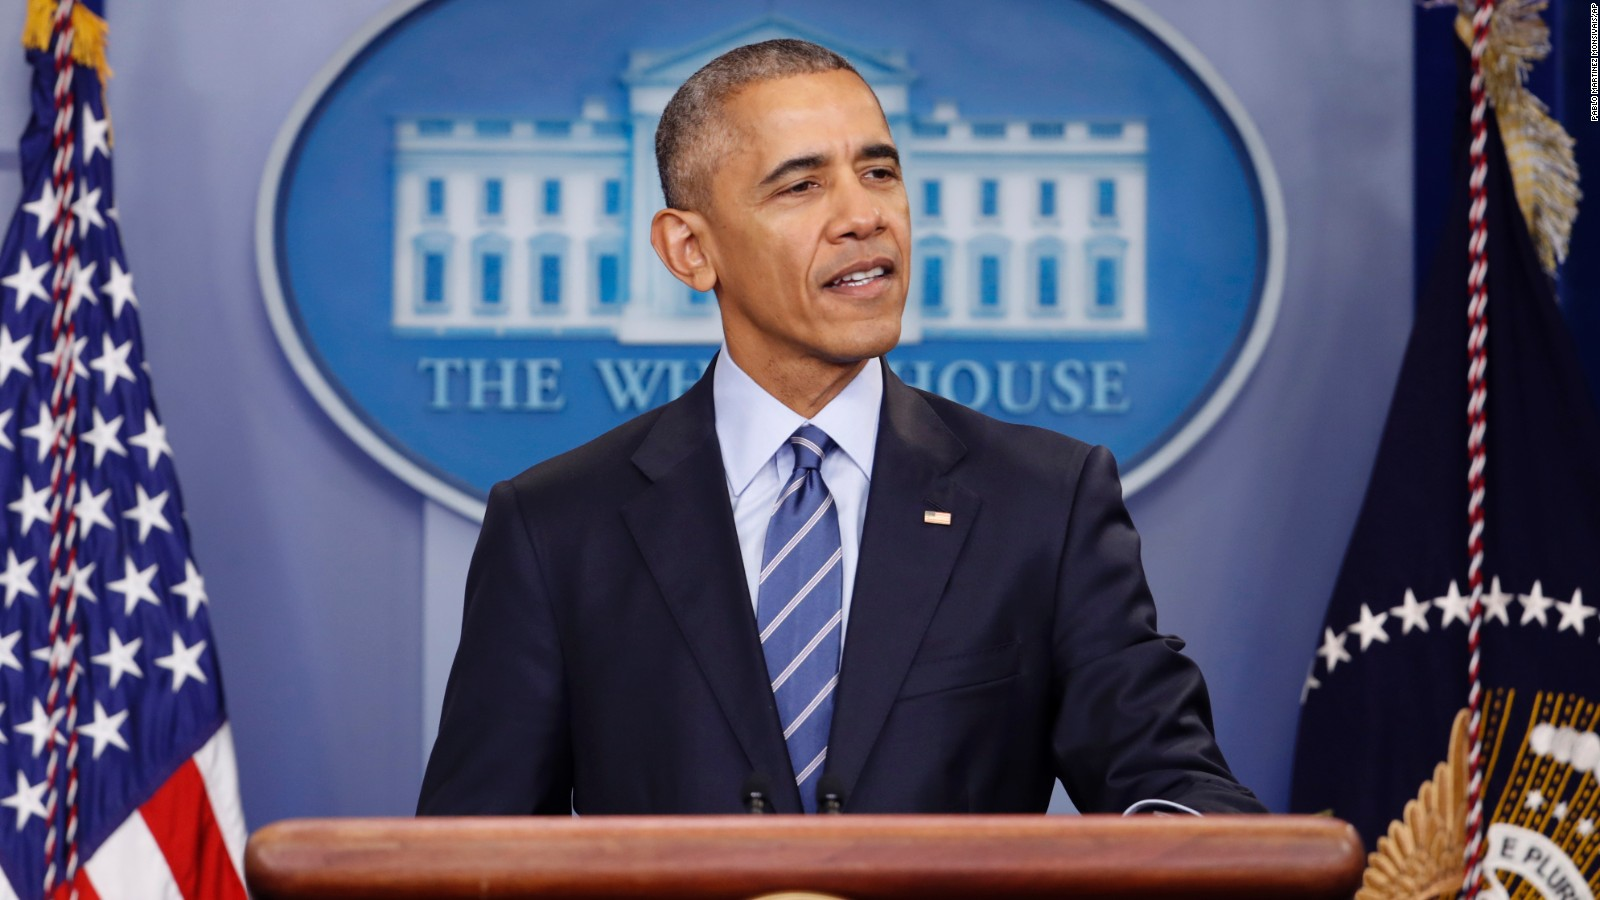 Russia sanctions announced by White House, Obama ejects diplomats ...